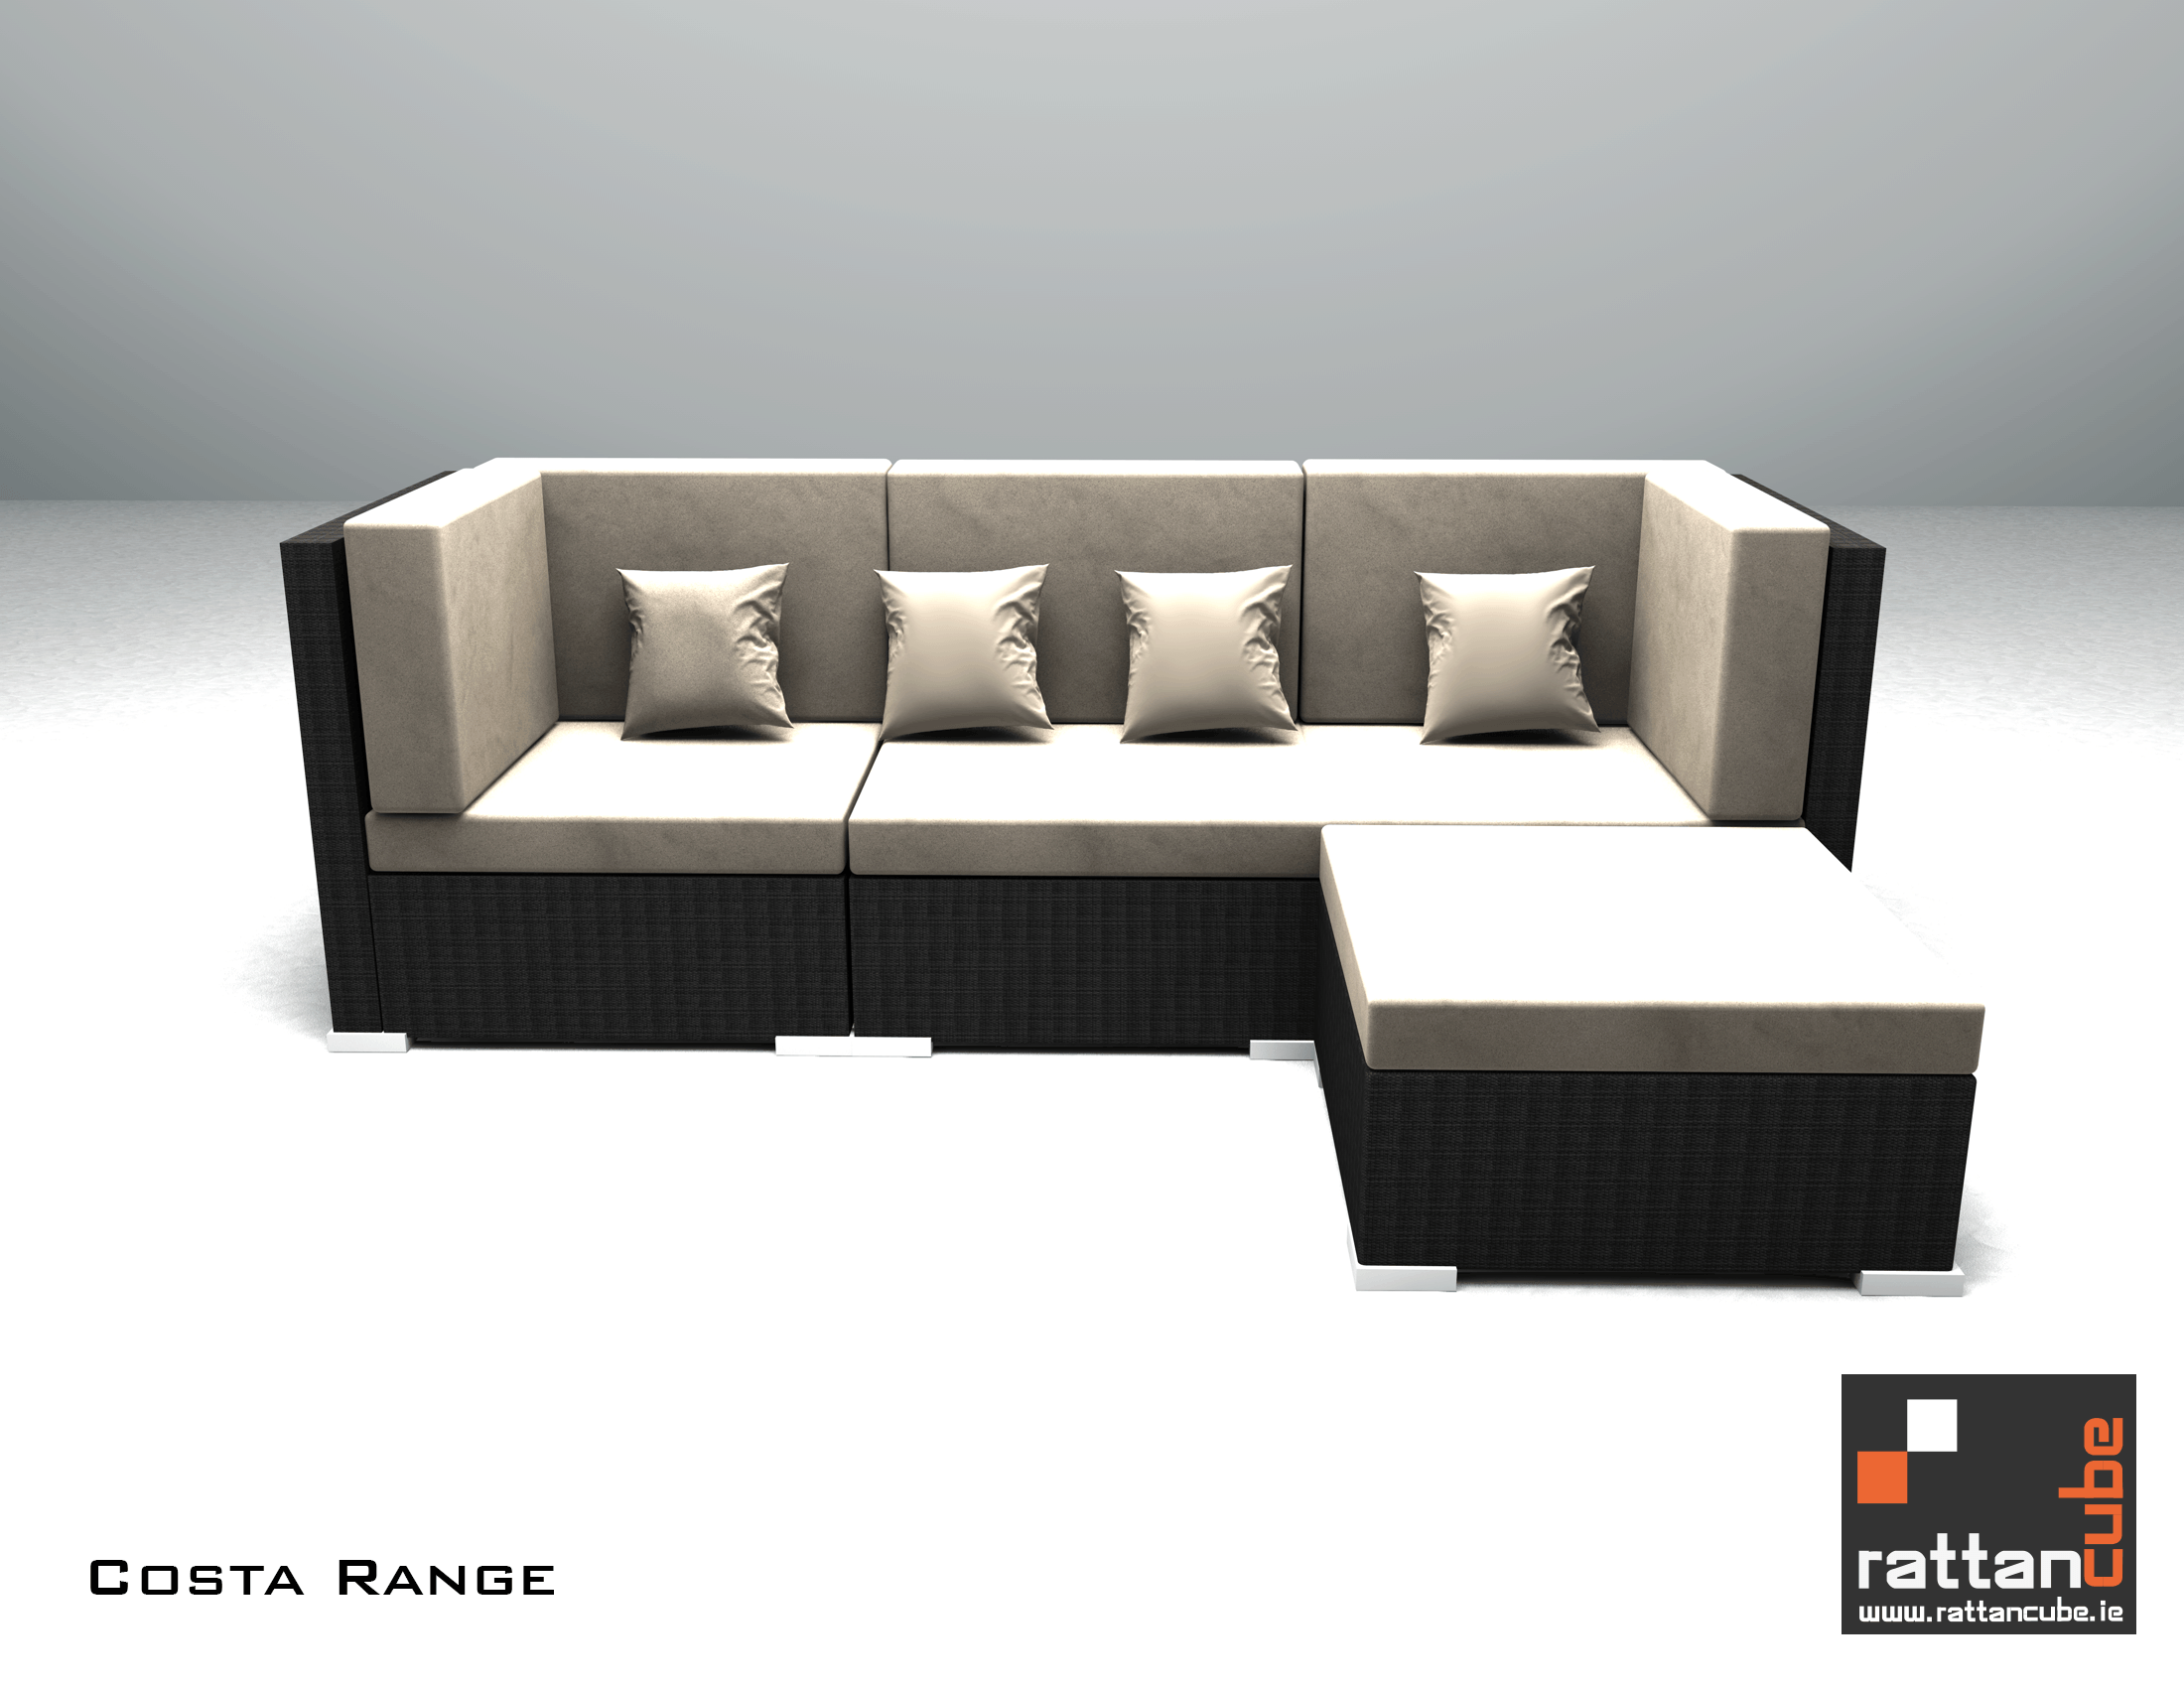 Rattan Corner Sofa Ireland Costa Sofa Set Rattan Cube Garden Furniture Pinterest Sofa Set